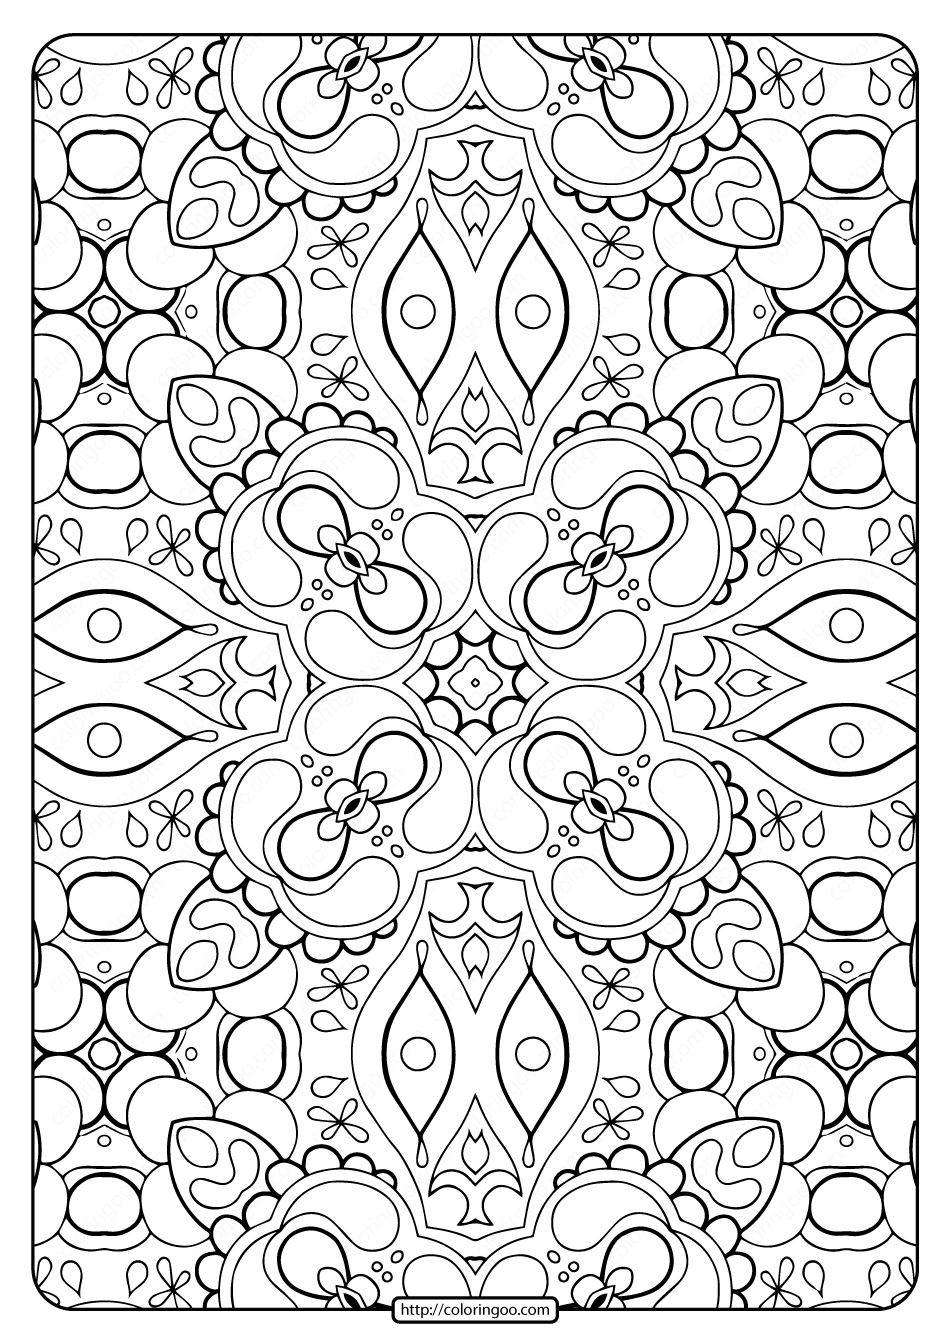 free coloring patterns printable abstract pattern adult coloring pages 01 coloring patterns free